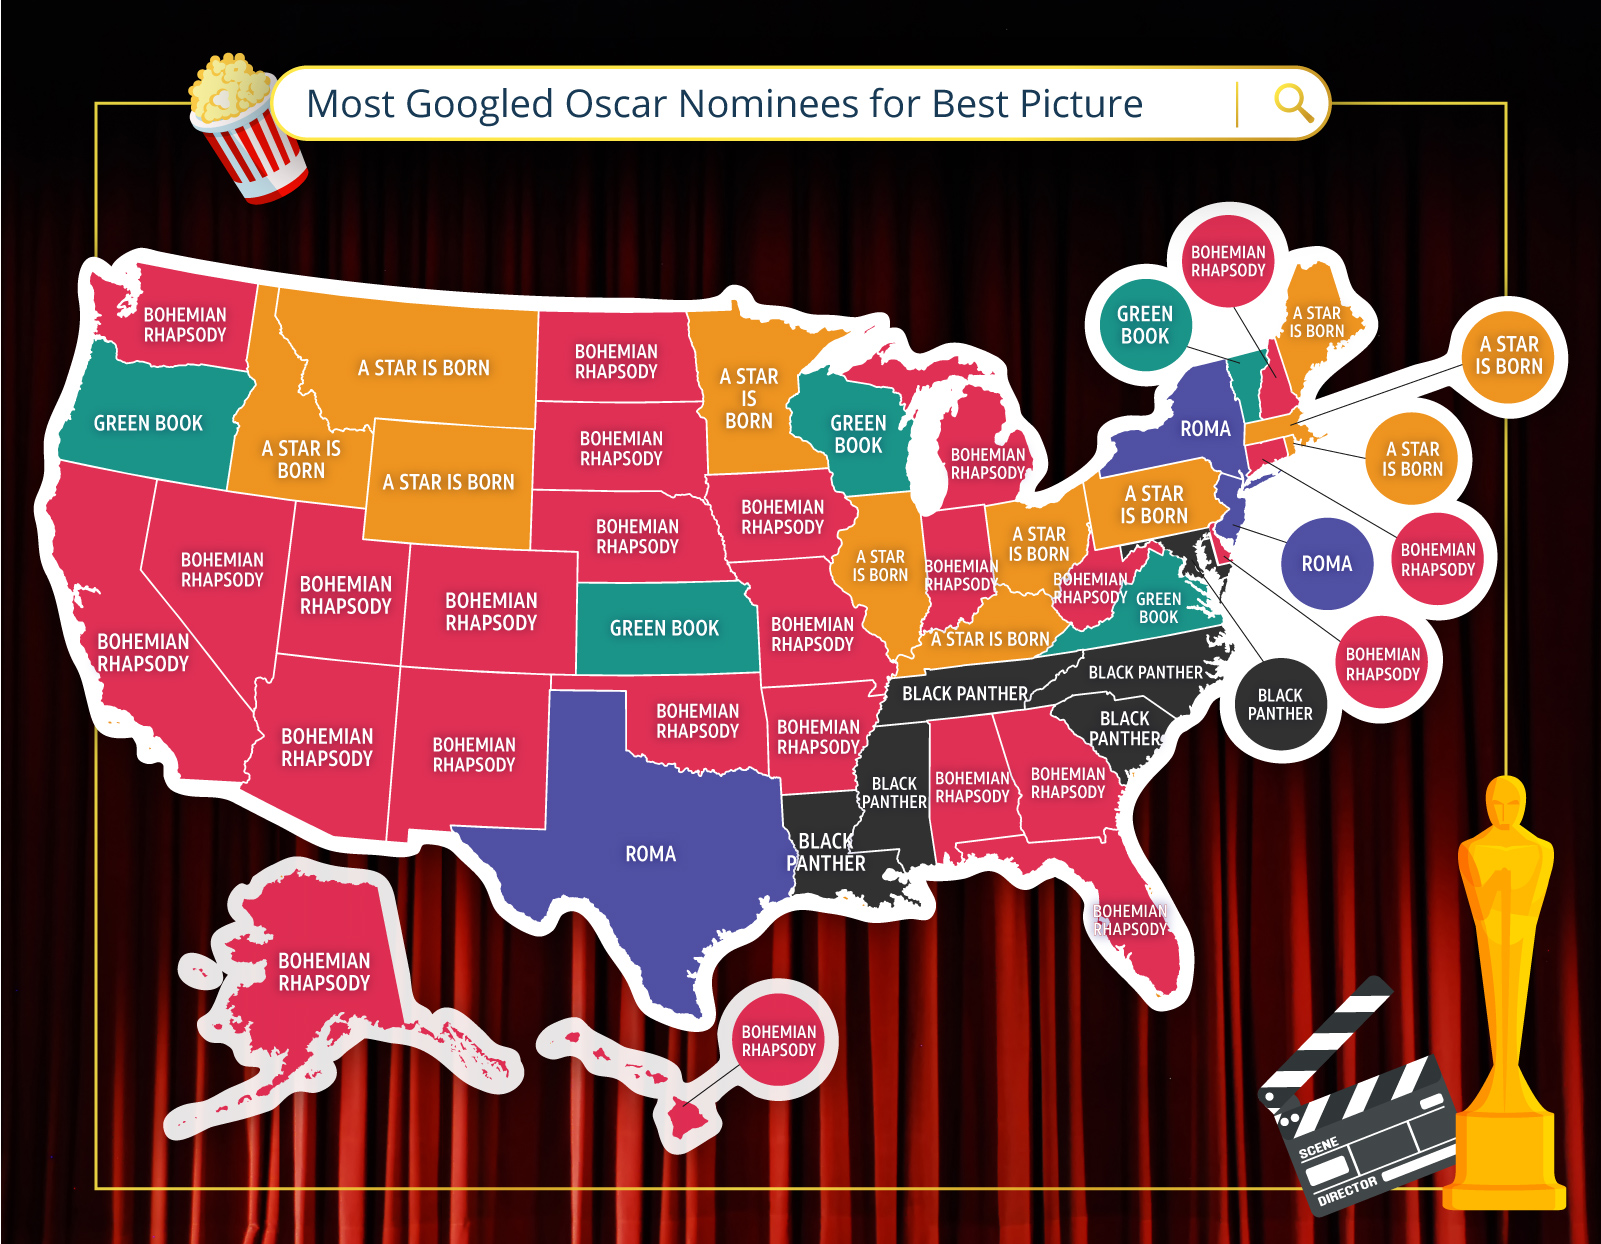 most googled oscar nominatees for best picture